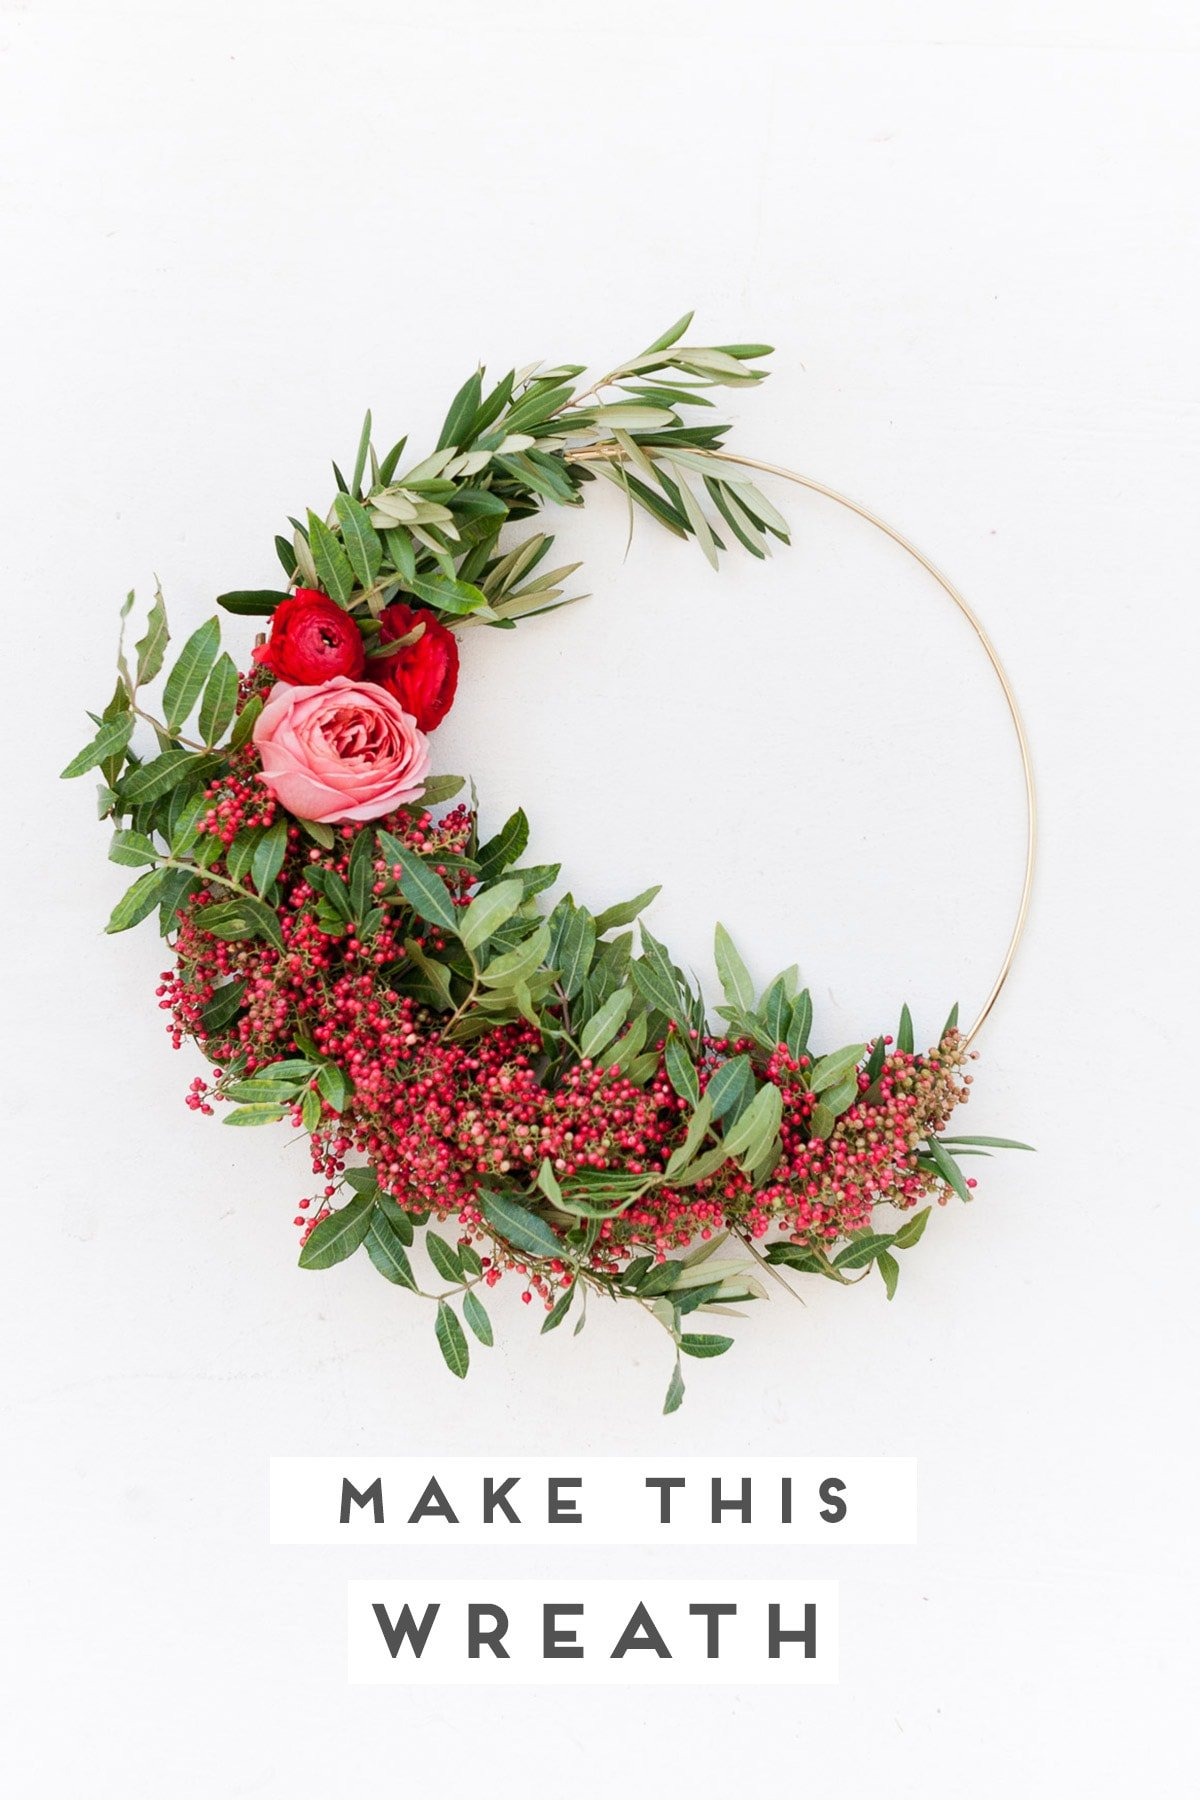 Unique holiday wreath made of red berries, pink flowers, and greenery.